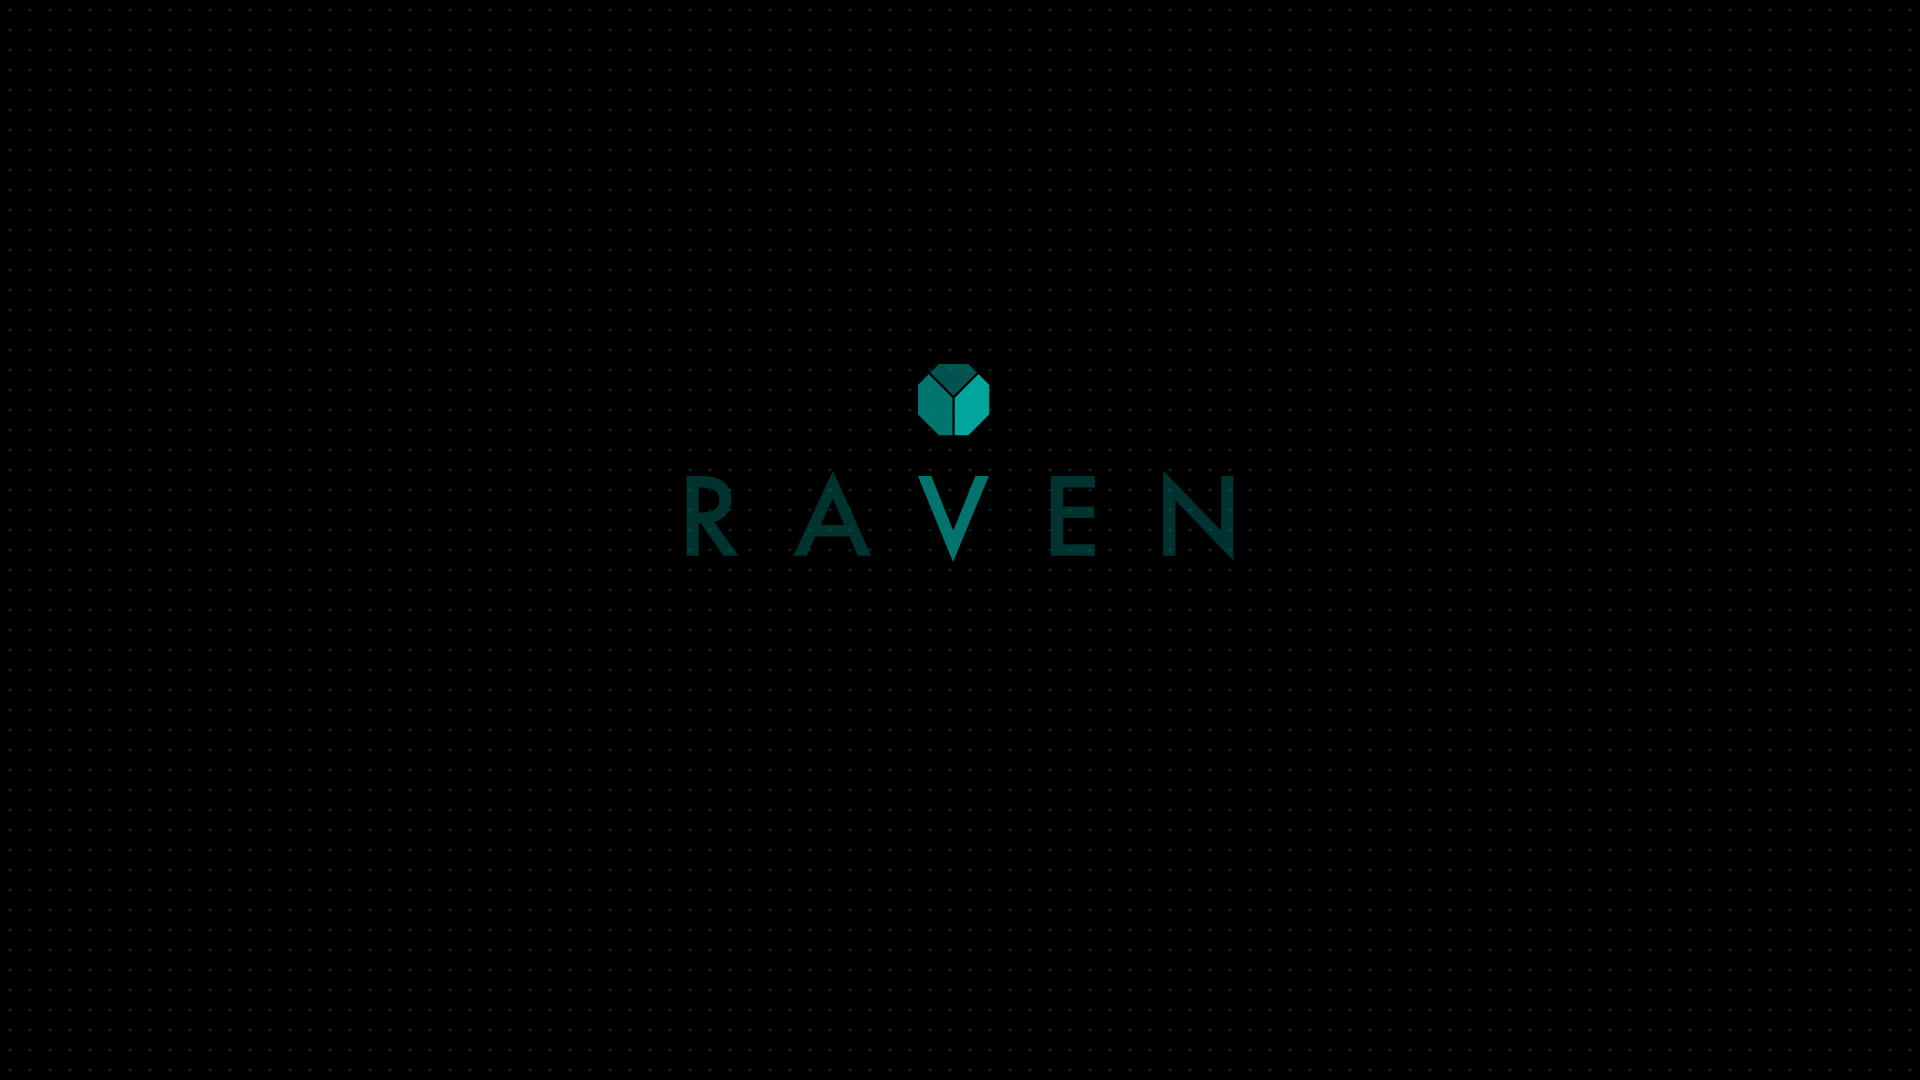 RAVEN_09-01.png